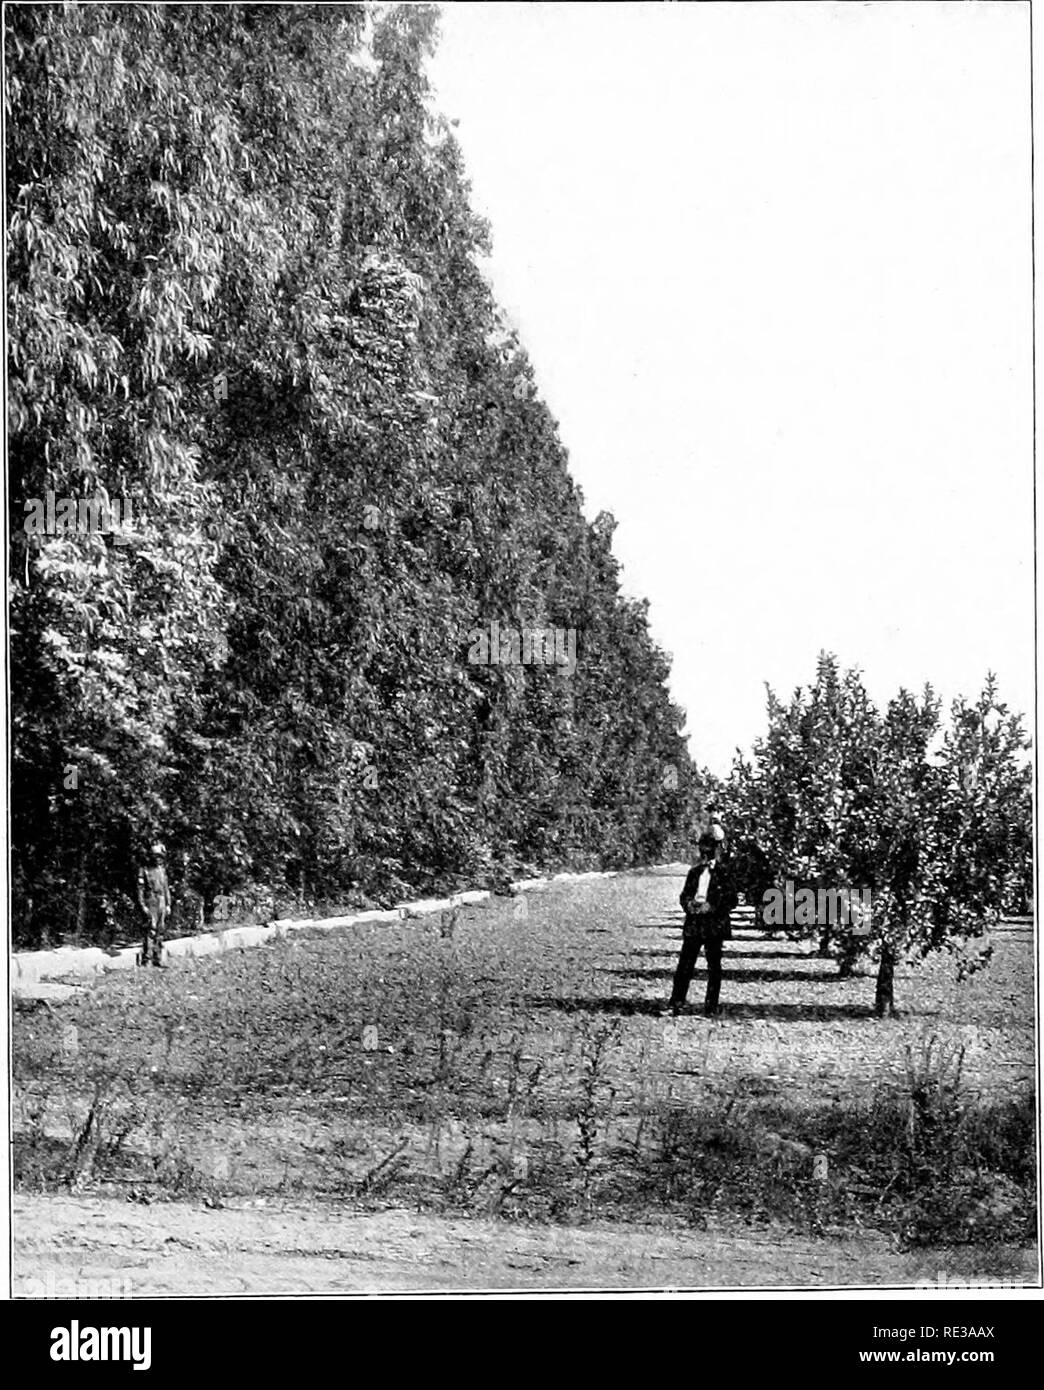 . Introduction to botany. Botany. TBIP.ER; FORESTRY 117. Fiu. 98. Evergreen windbreak of Eucalyptus sheltering a California lemon orchard Photograph hy United States Forest Service Many trees, as oaks, chestnuts, and birches, sprout freely from the stump, and in this way woodlands that have been cut away are renewed much more quickly than they could be by the growth of young trees from the seed. Often it is found. Please note that these images are extracted from scanned page images that may have been digitally enhanced for readability - coloration and appearance of these illustrations may not  - Stock Image